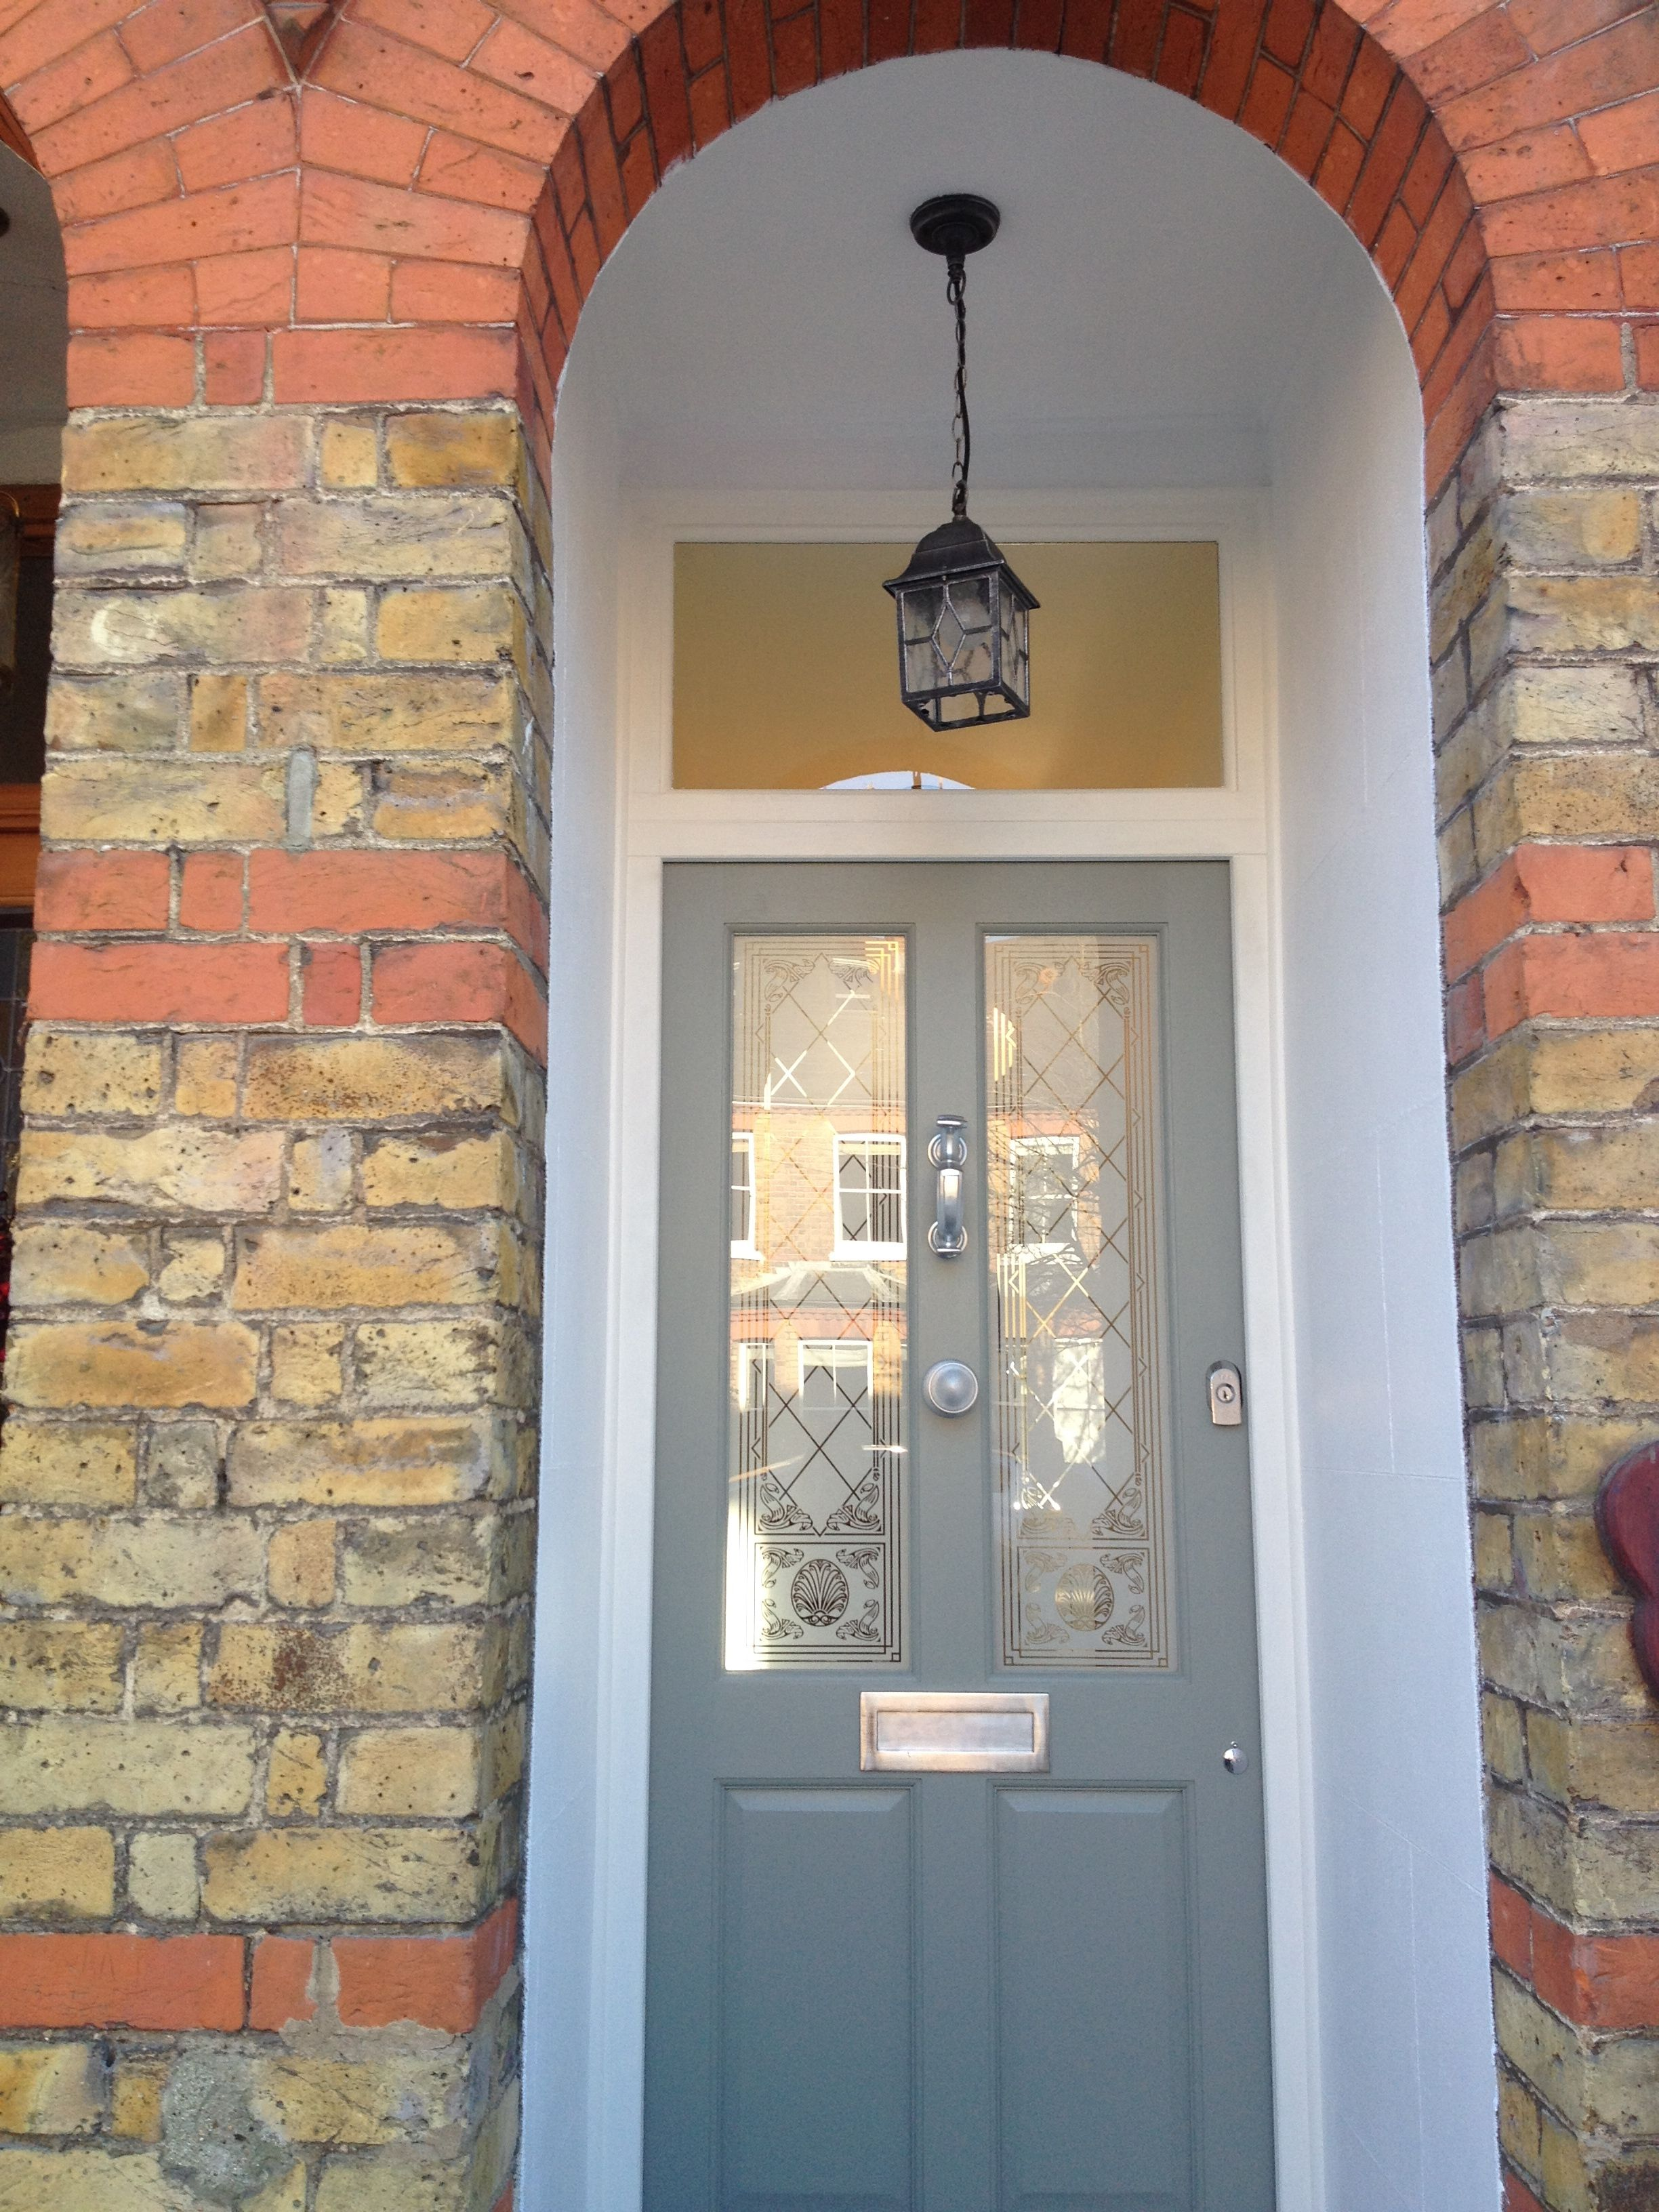 Farrow and ball pigeon front door victorian house by - Farrow and ball exterior paint ideas ...